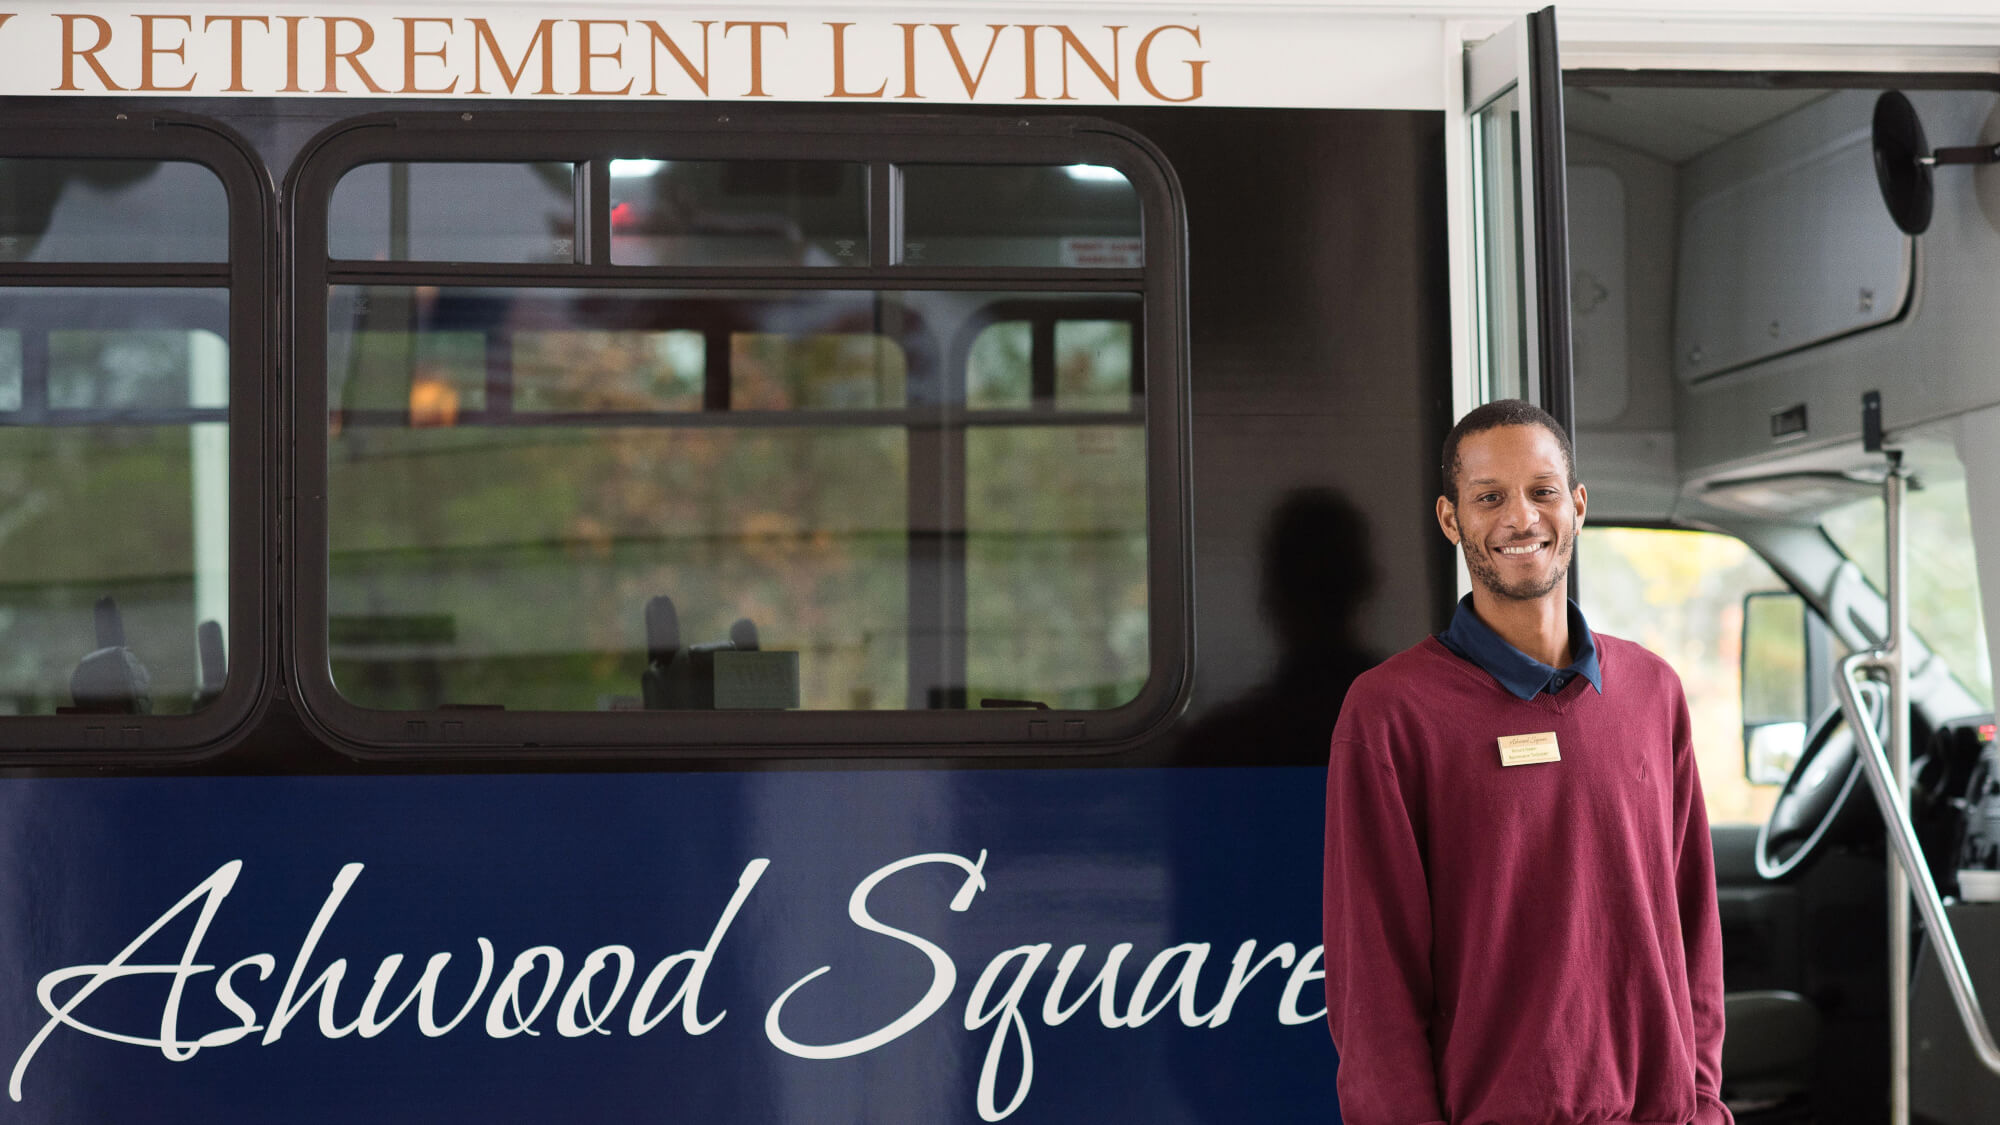 Ashwood Square offers free scheduled transportation